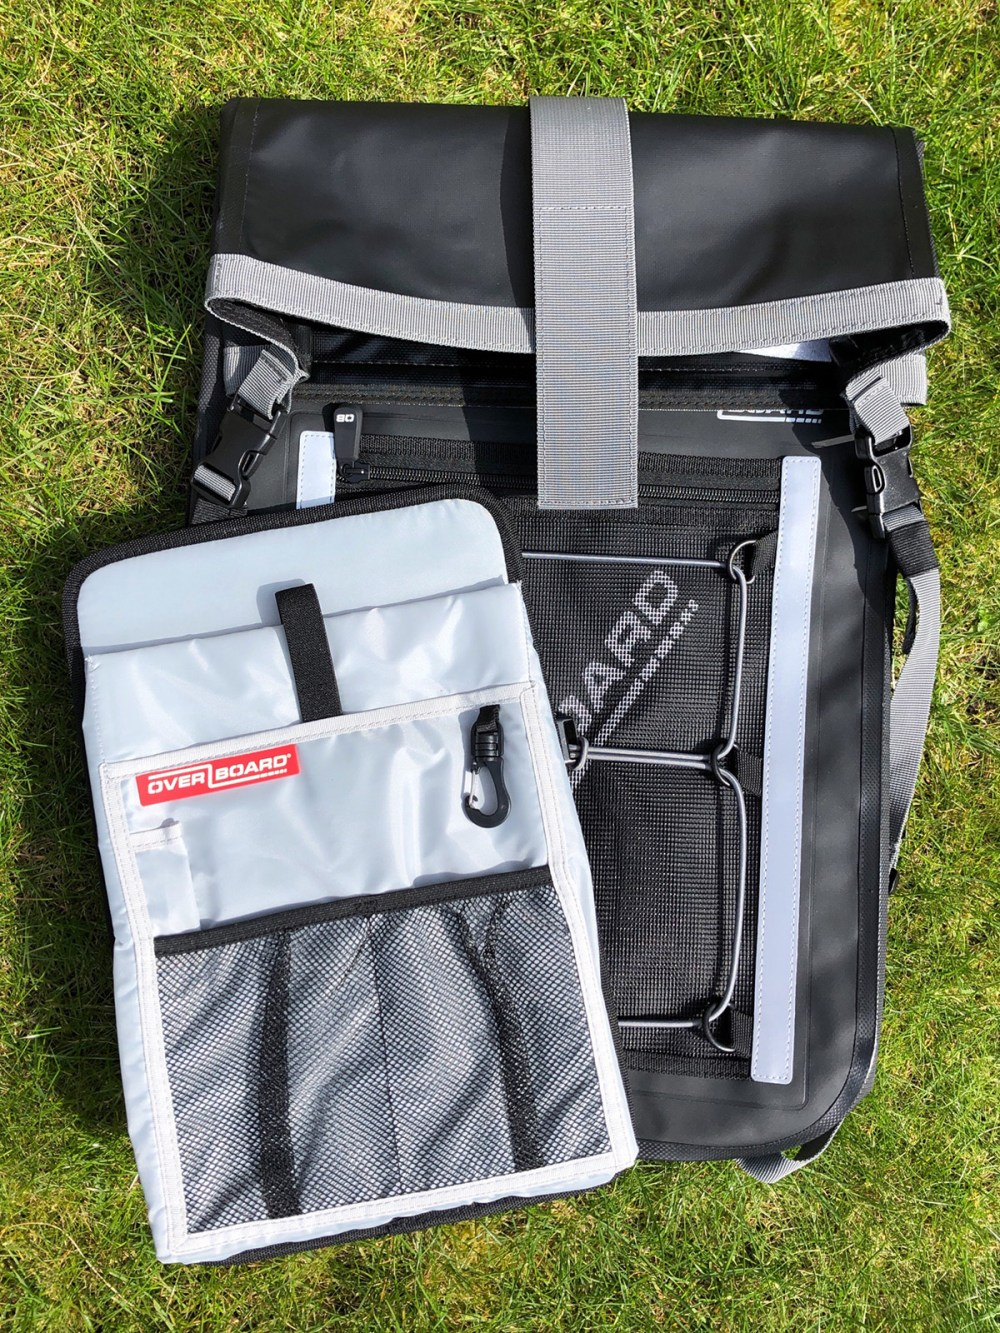 Splodz Blogz | Overboard Pro-Sports Waterproof Backpack